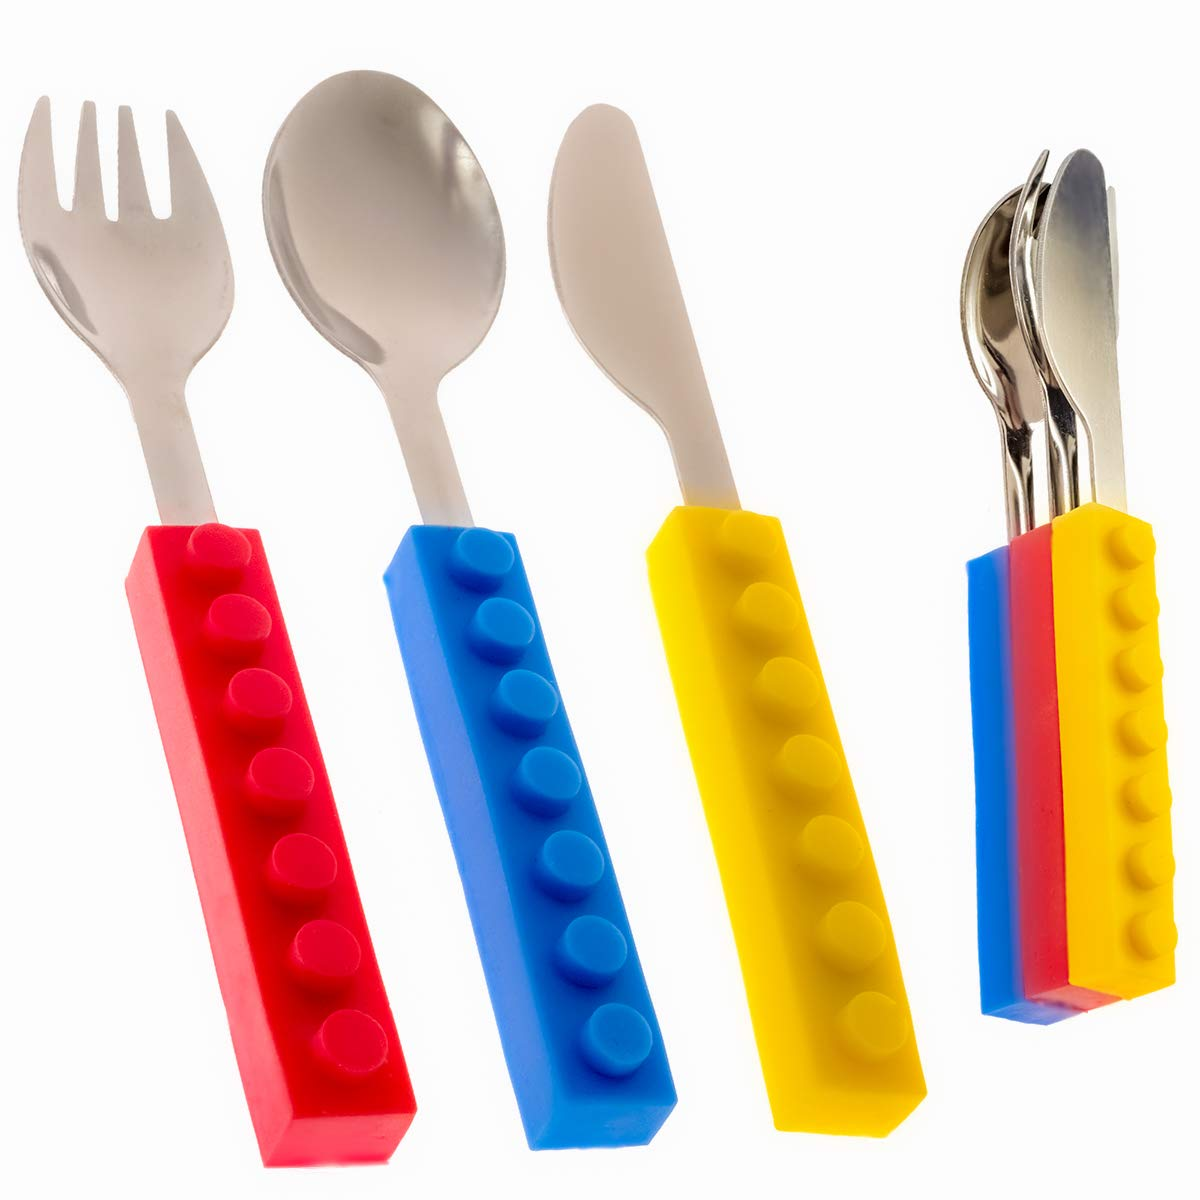 Toddler Utensils and Brick Toys - Set of 3 Interlocking Block Kids Silverware - Toddler Fork and Spoon Set with Toddler Knife for Kids - Non-BPA Kids Cutlery and Kid Safe Stainless Steel Silverware